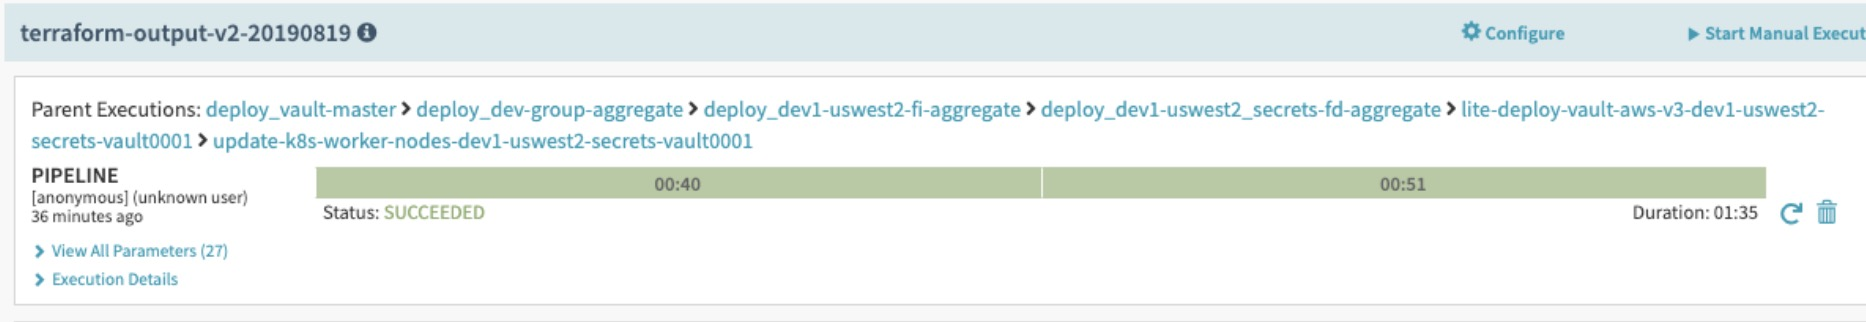 Breadcrumbs for nested pipeline execution context